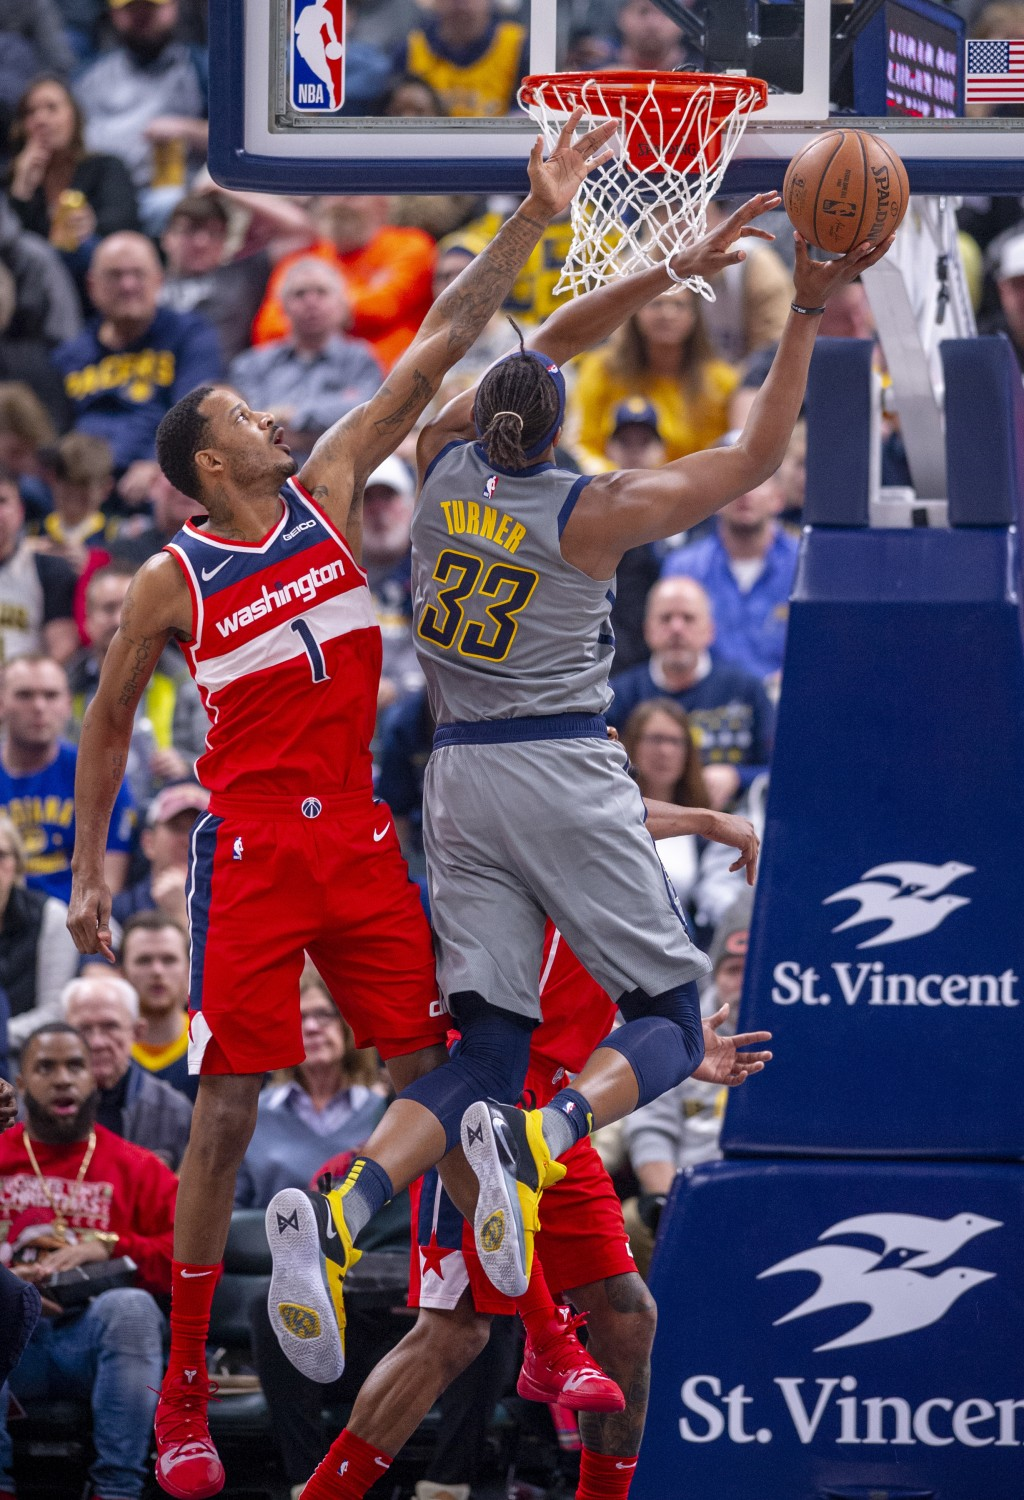 Indiana Pacers center Myles Turner (33) tries to shoot around the defensive efforts of Washington Wizards forward Trevor Ariza (1) during an NBA baske